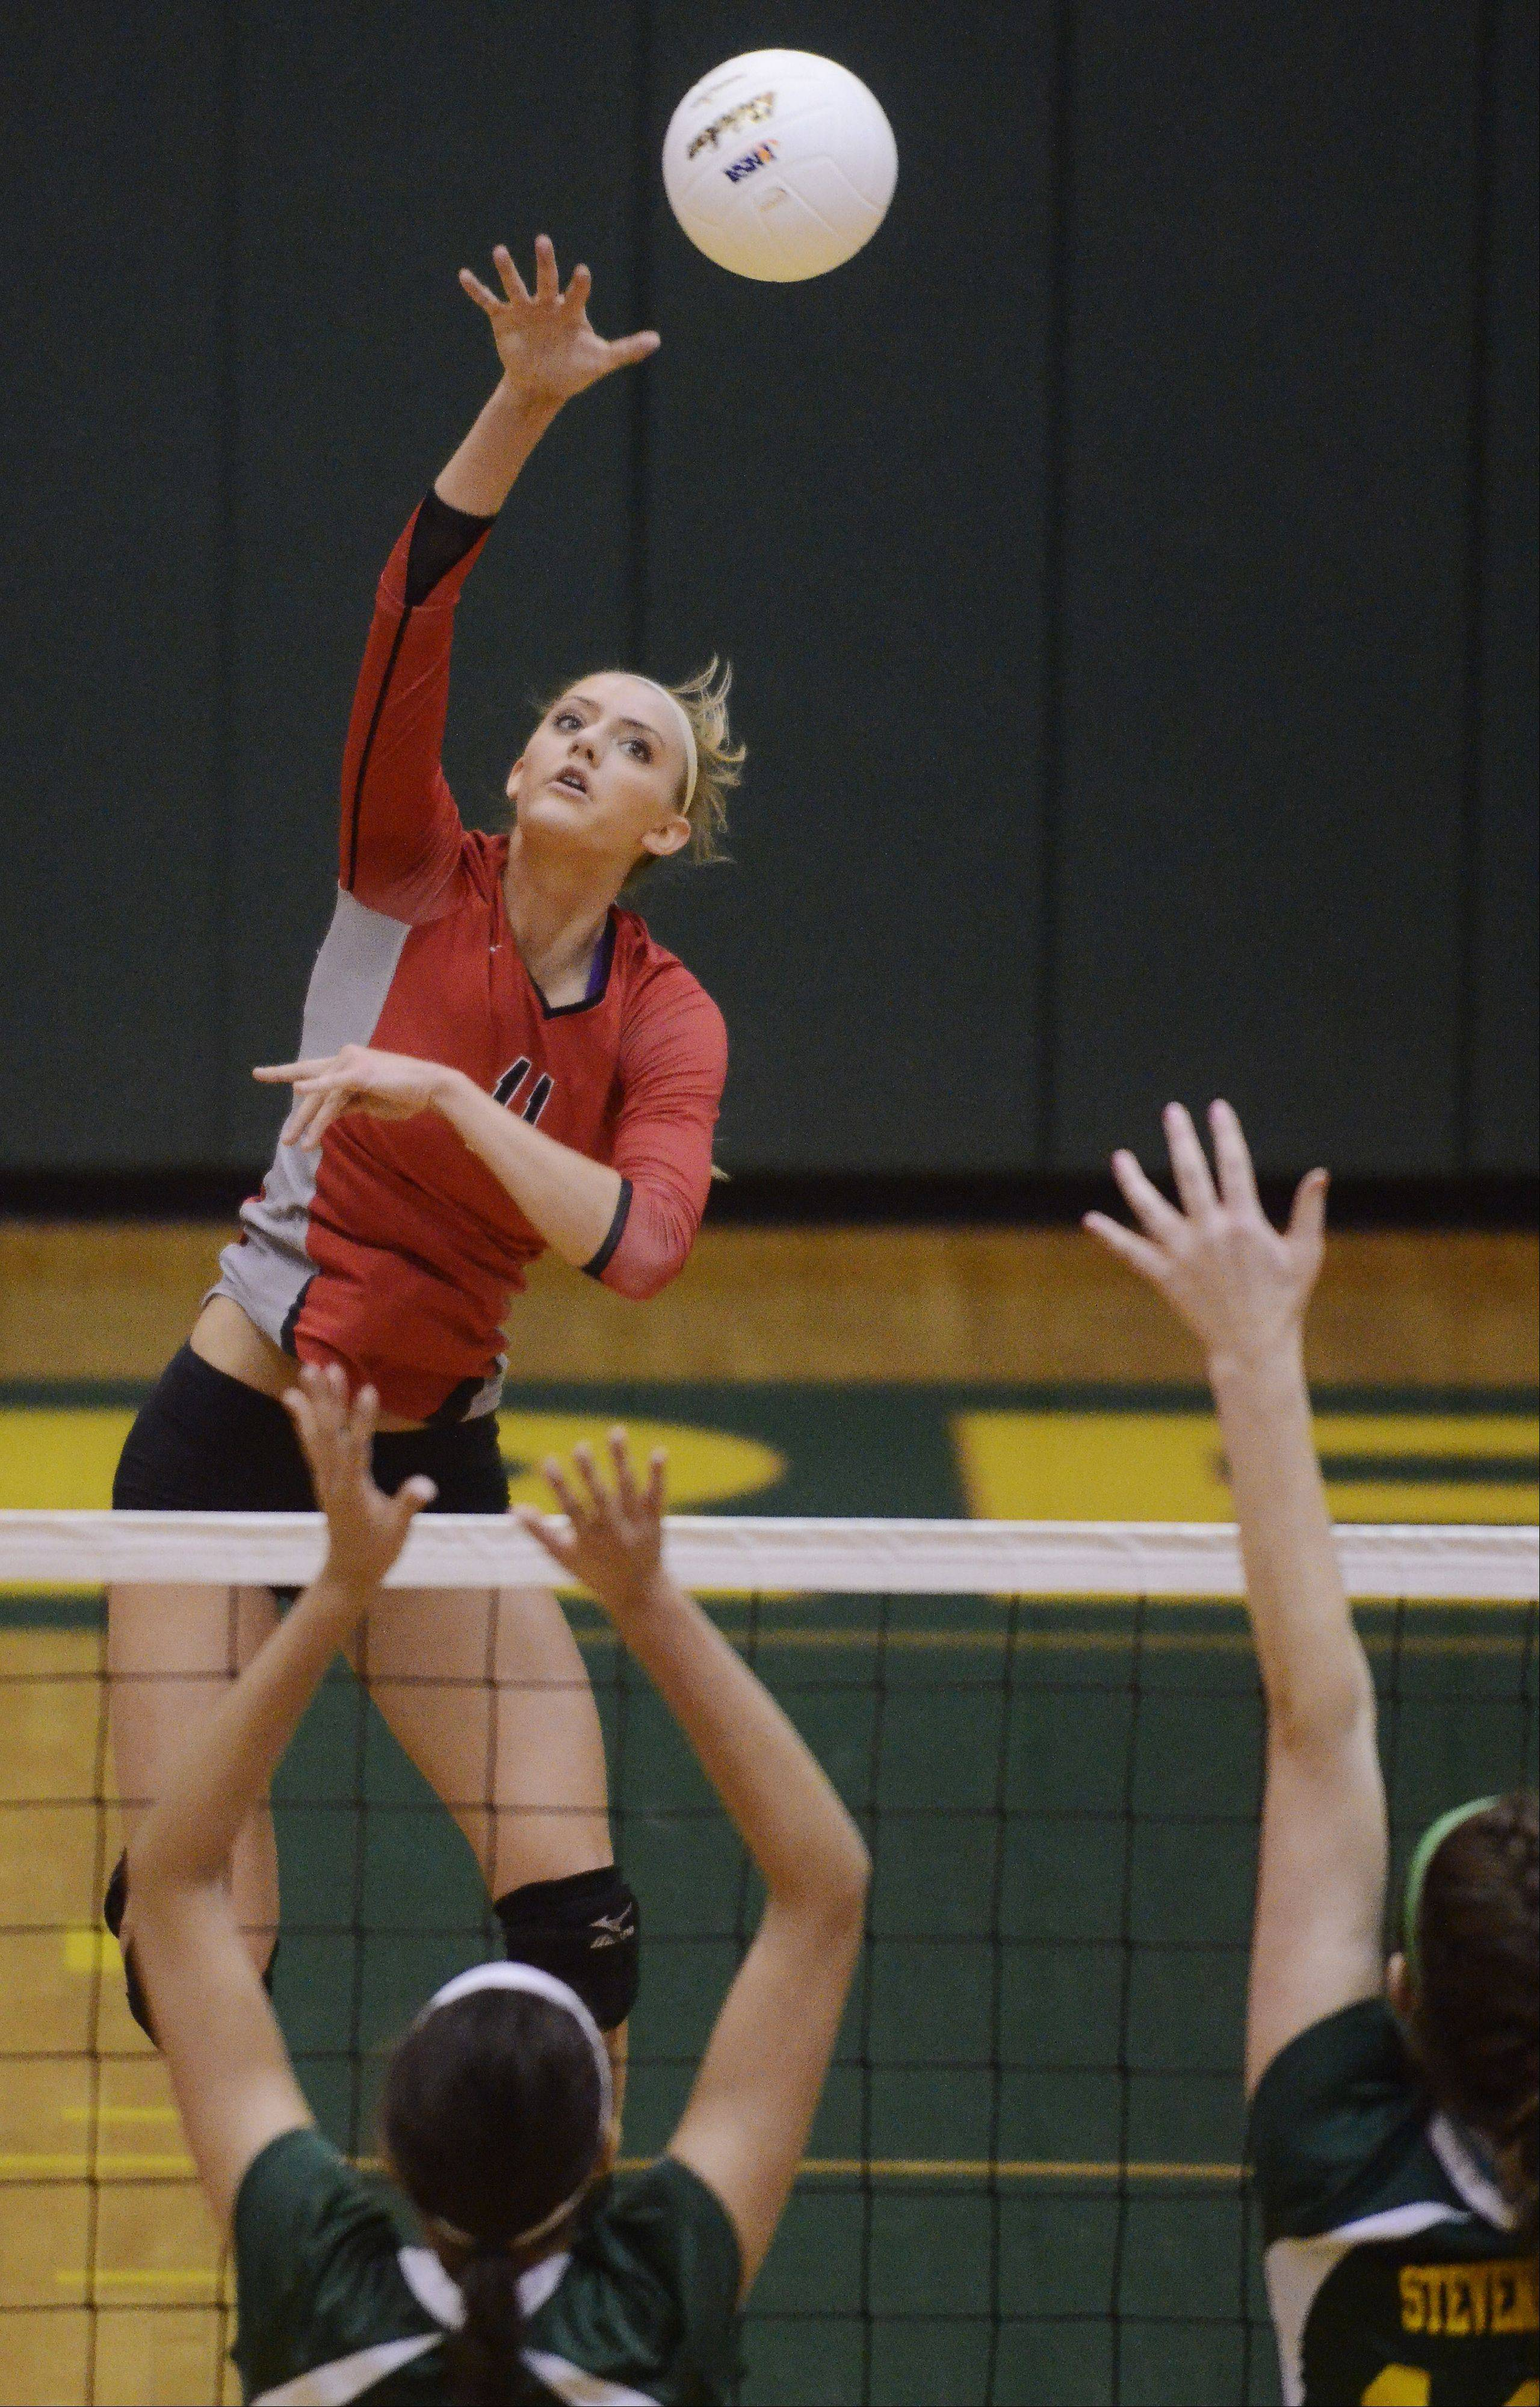 Palatine's Taylor Fricano attempts a kill during Tuesday's sectional semifinal against Stevenson.